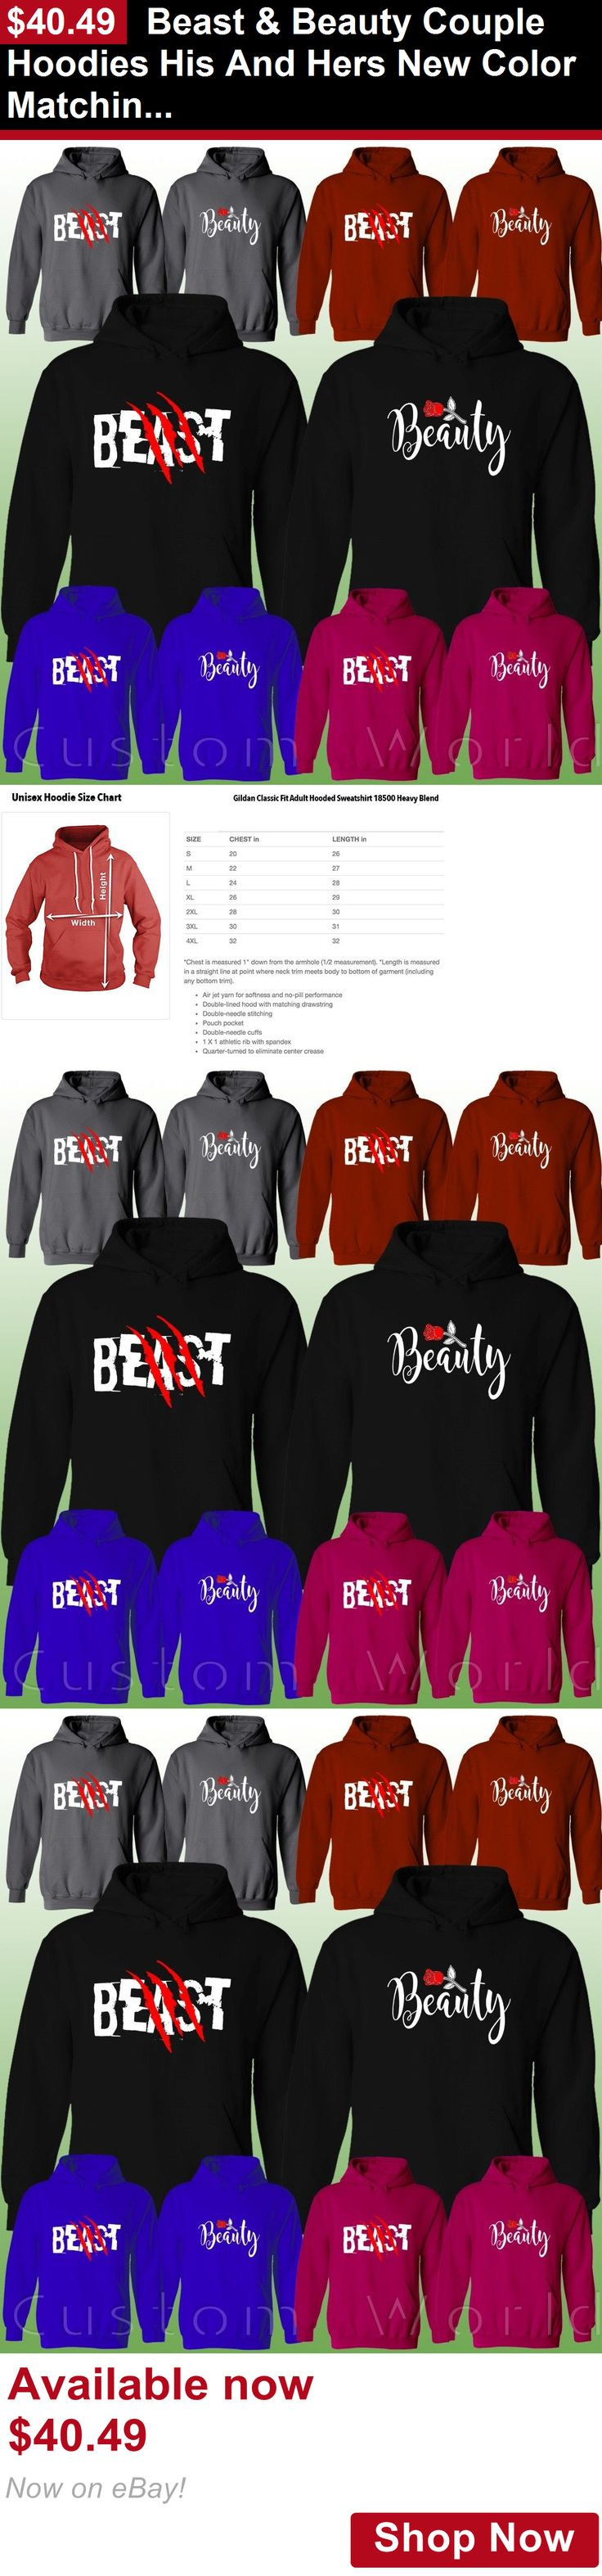 Unisex adult clothing: Beast And Beauty Couple Hoodies His And Hers New Color Matching Sweatshirts BUY IT NOW ONLY: $40.49